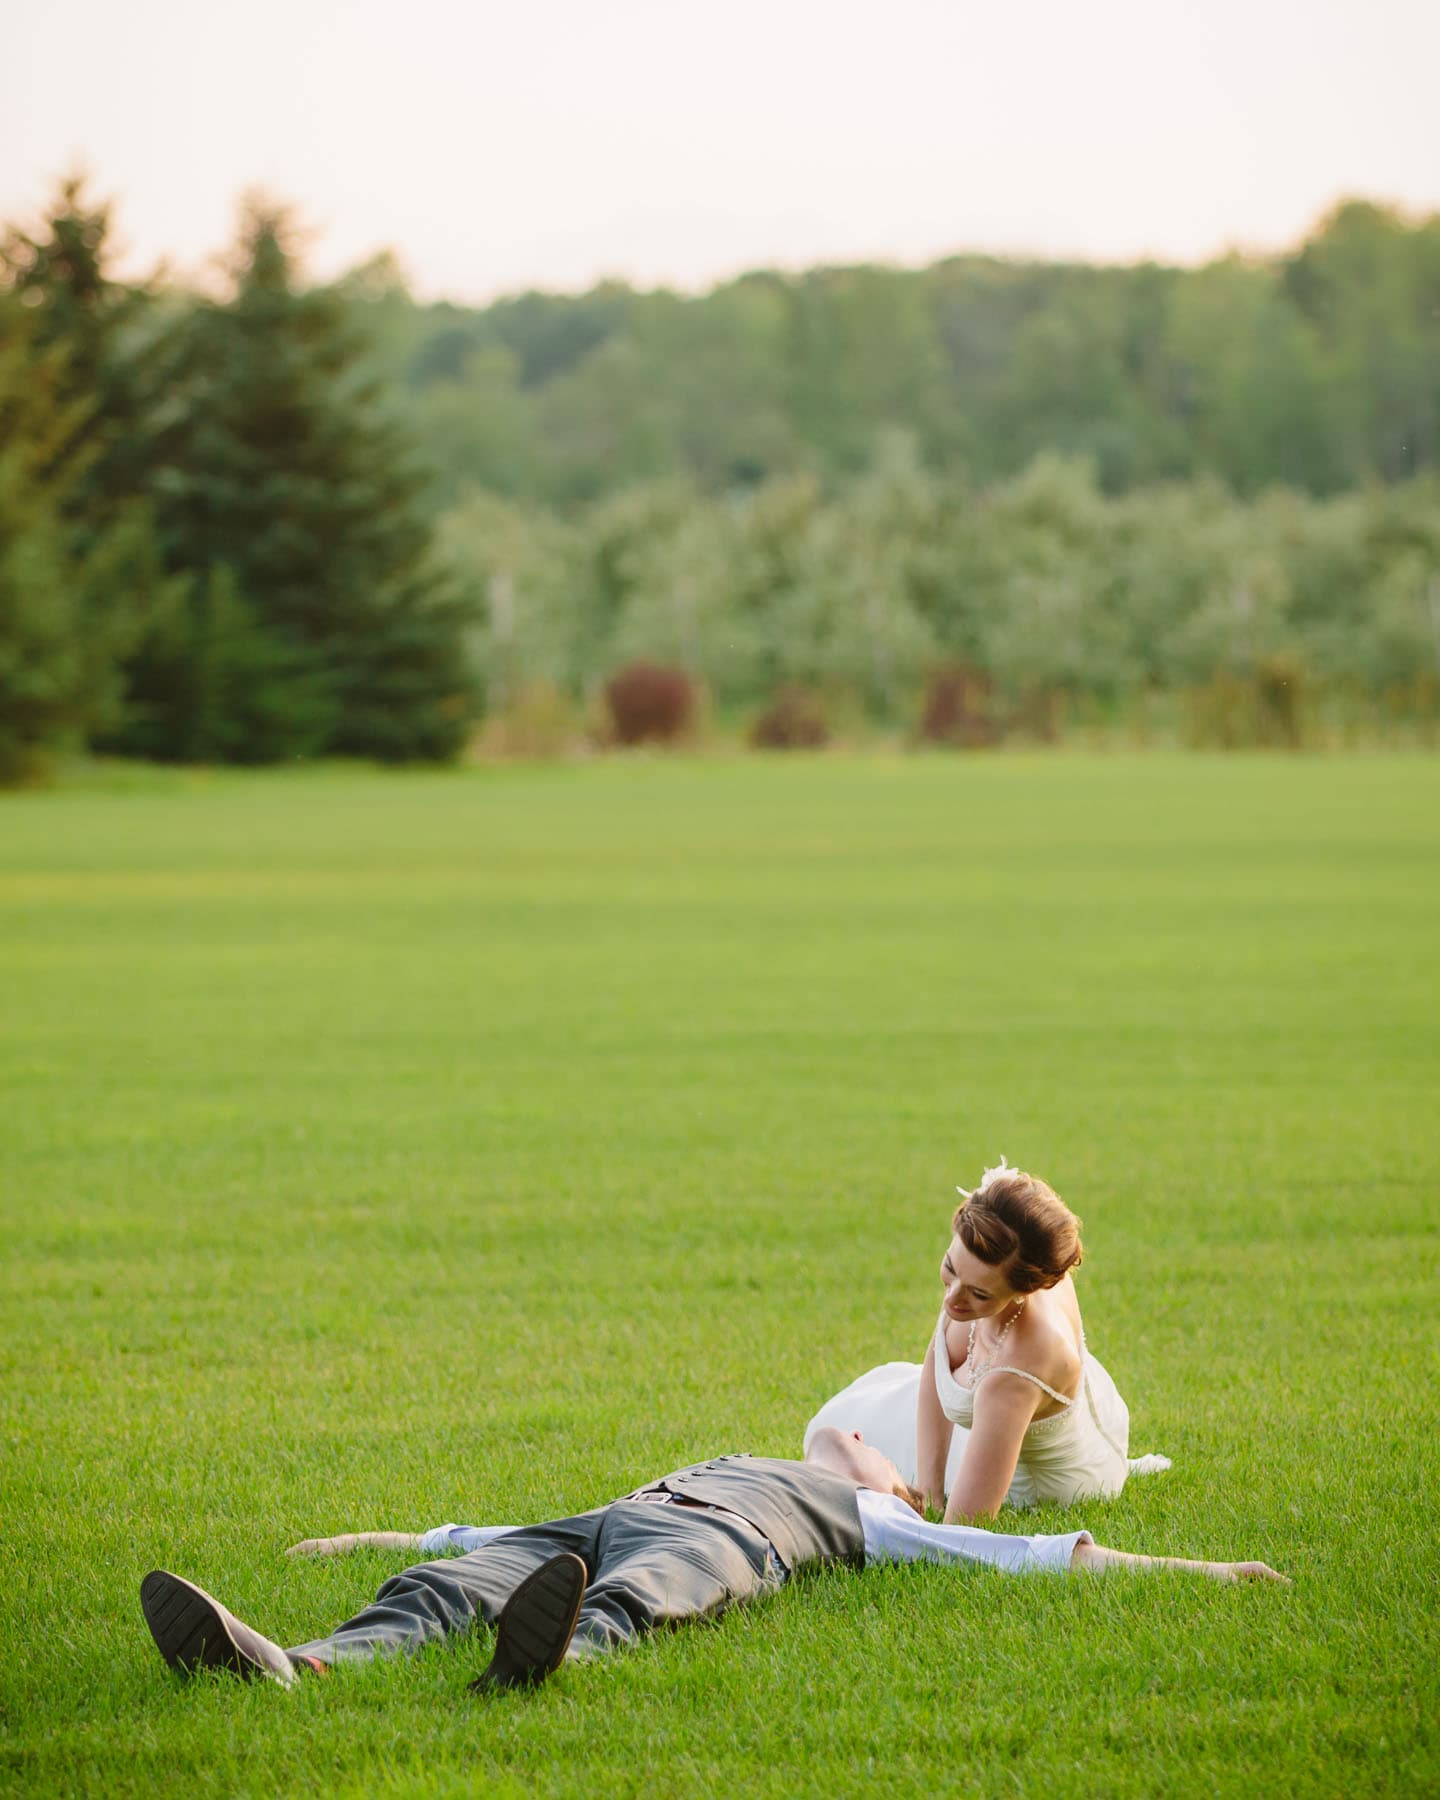 The groom is lying on his back and the bride leans over him on a sod farm in these backyard wedding photos.